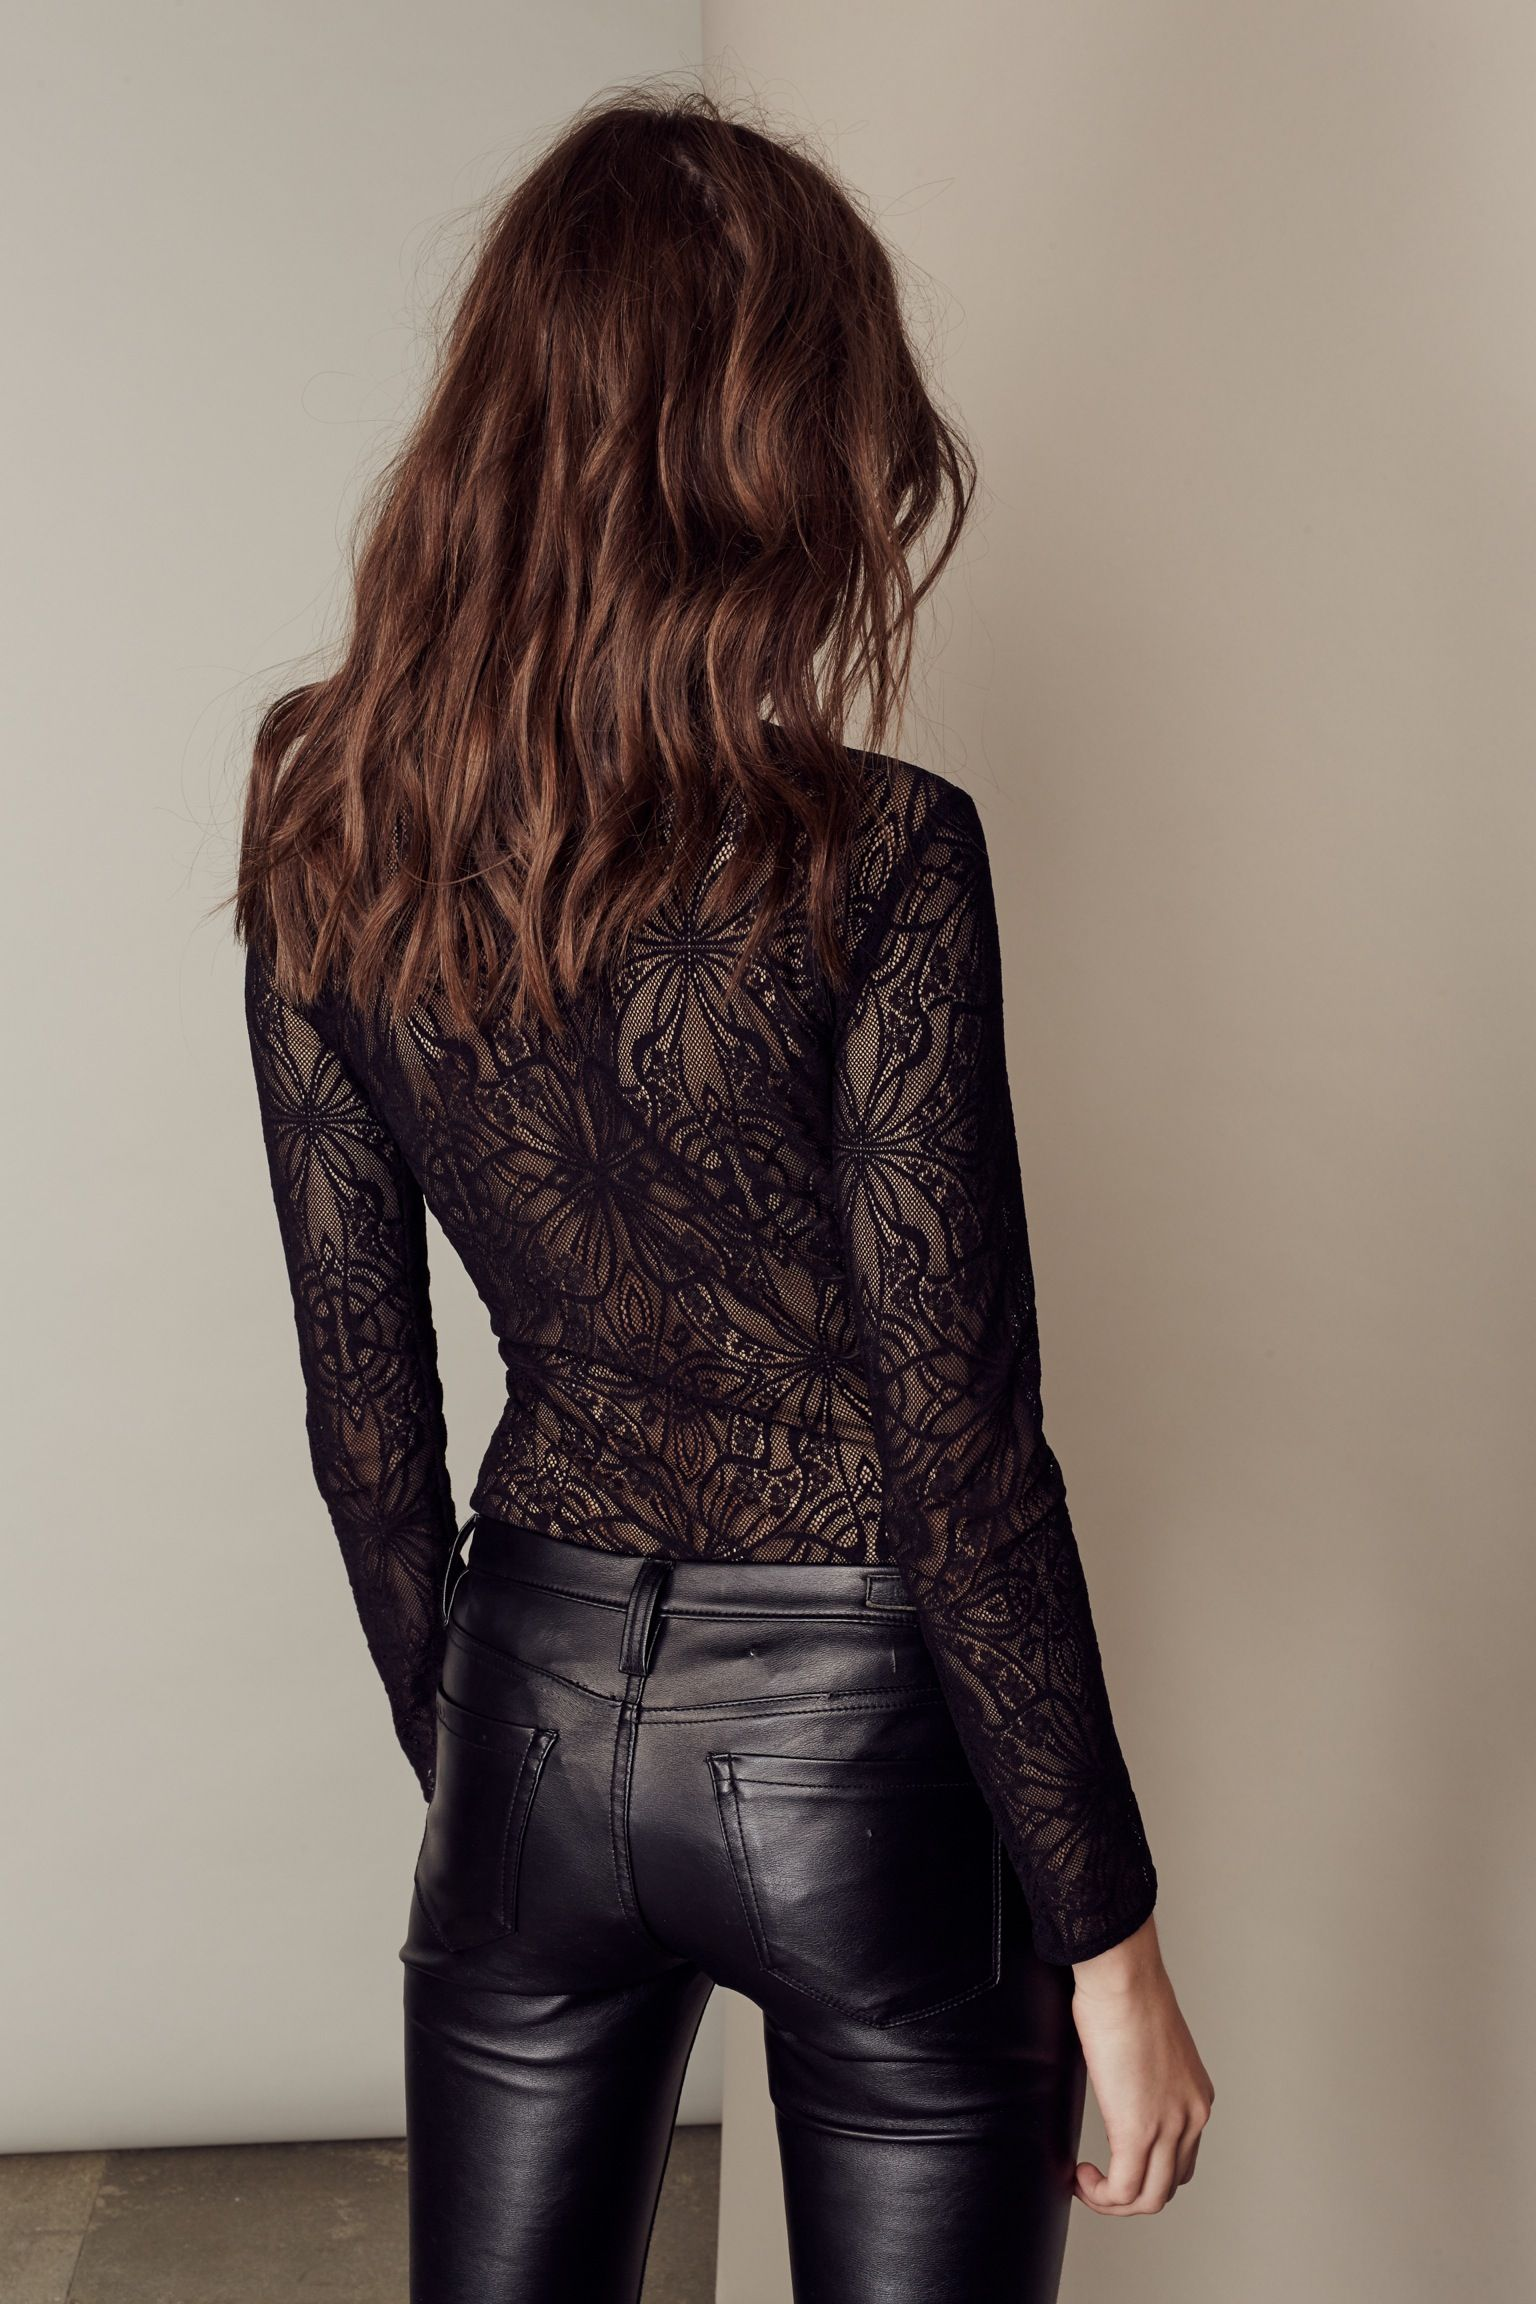 634f45678e6a50 date night outfit; black leather pants; intricate bodysuit | Fashion ...